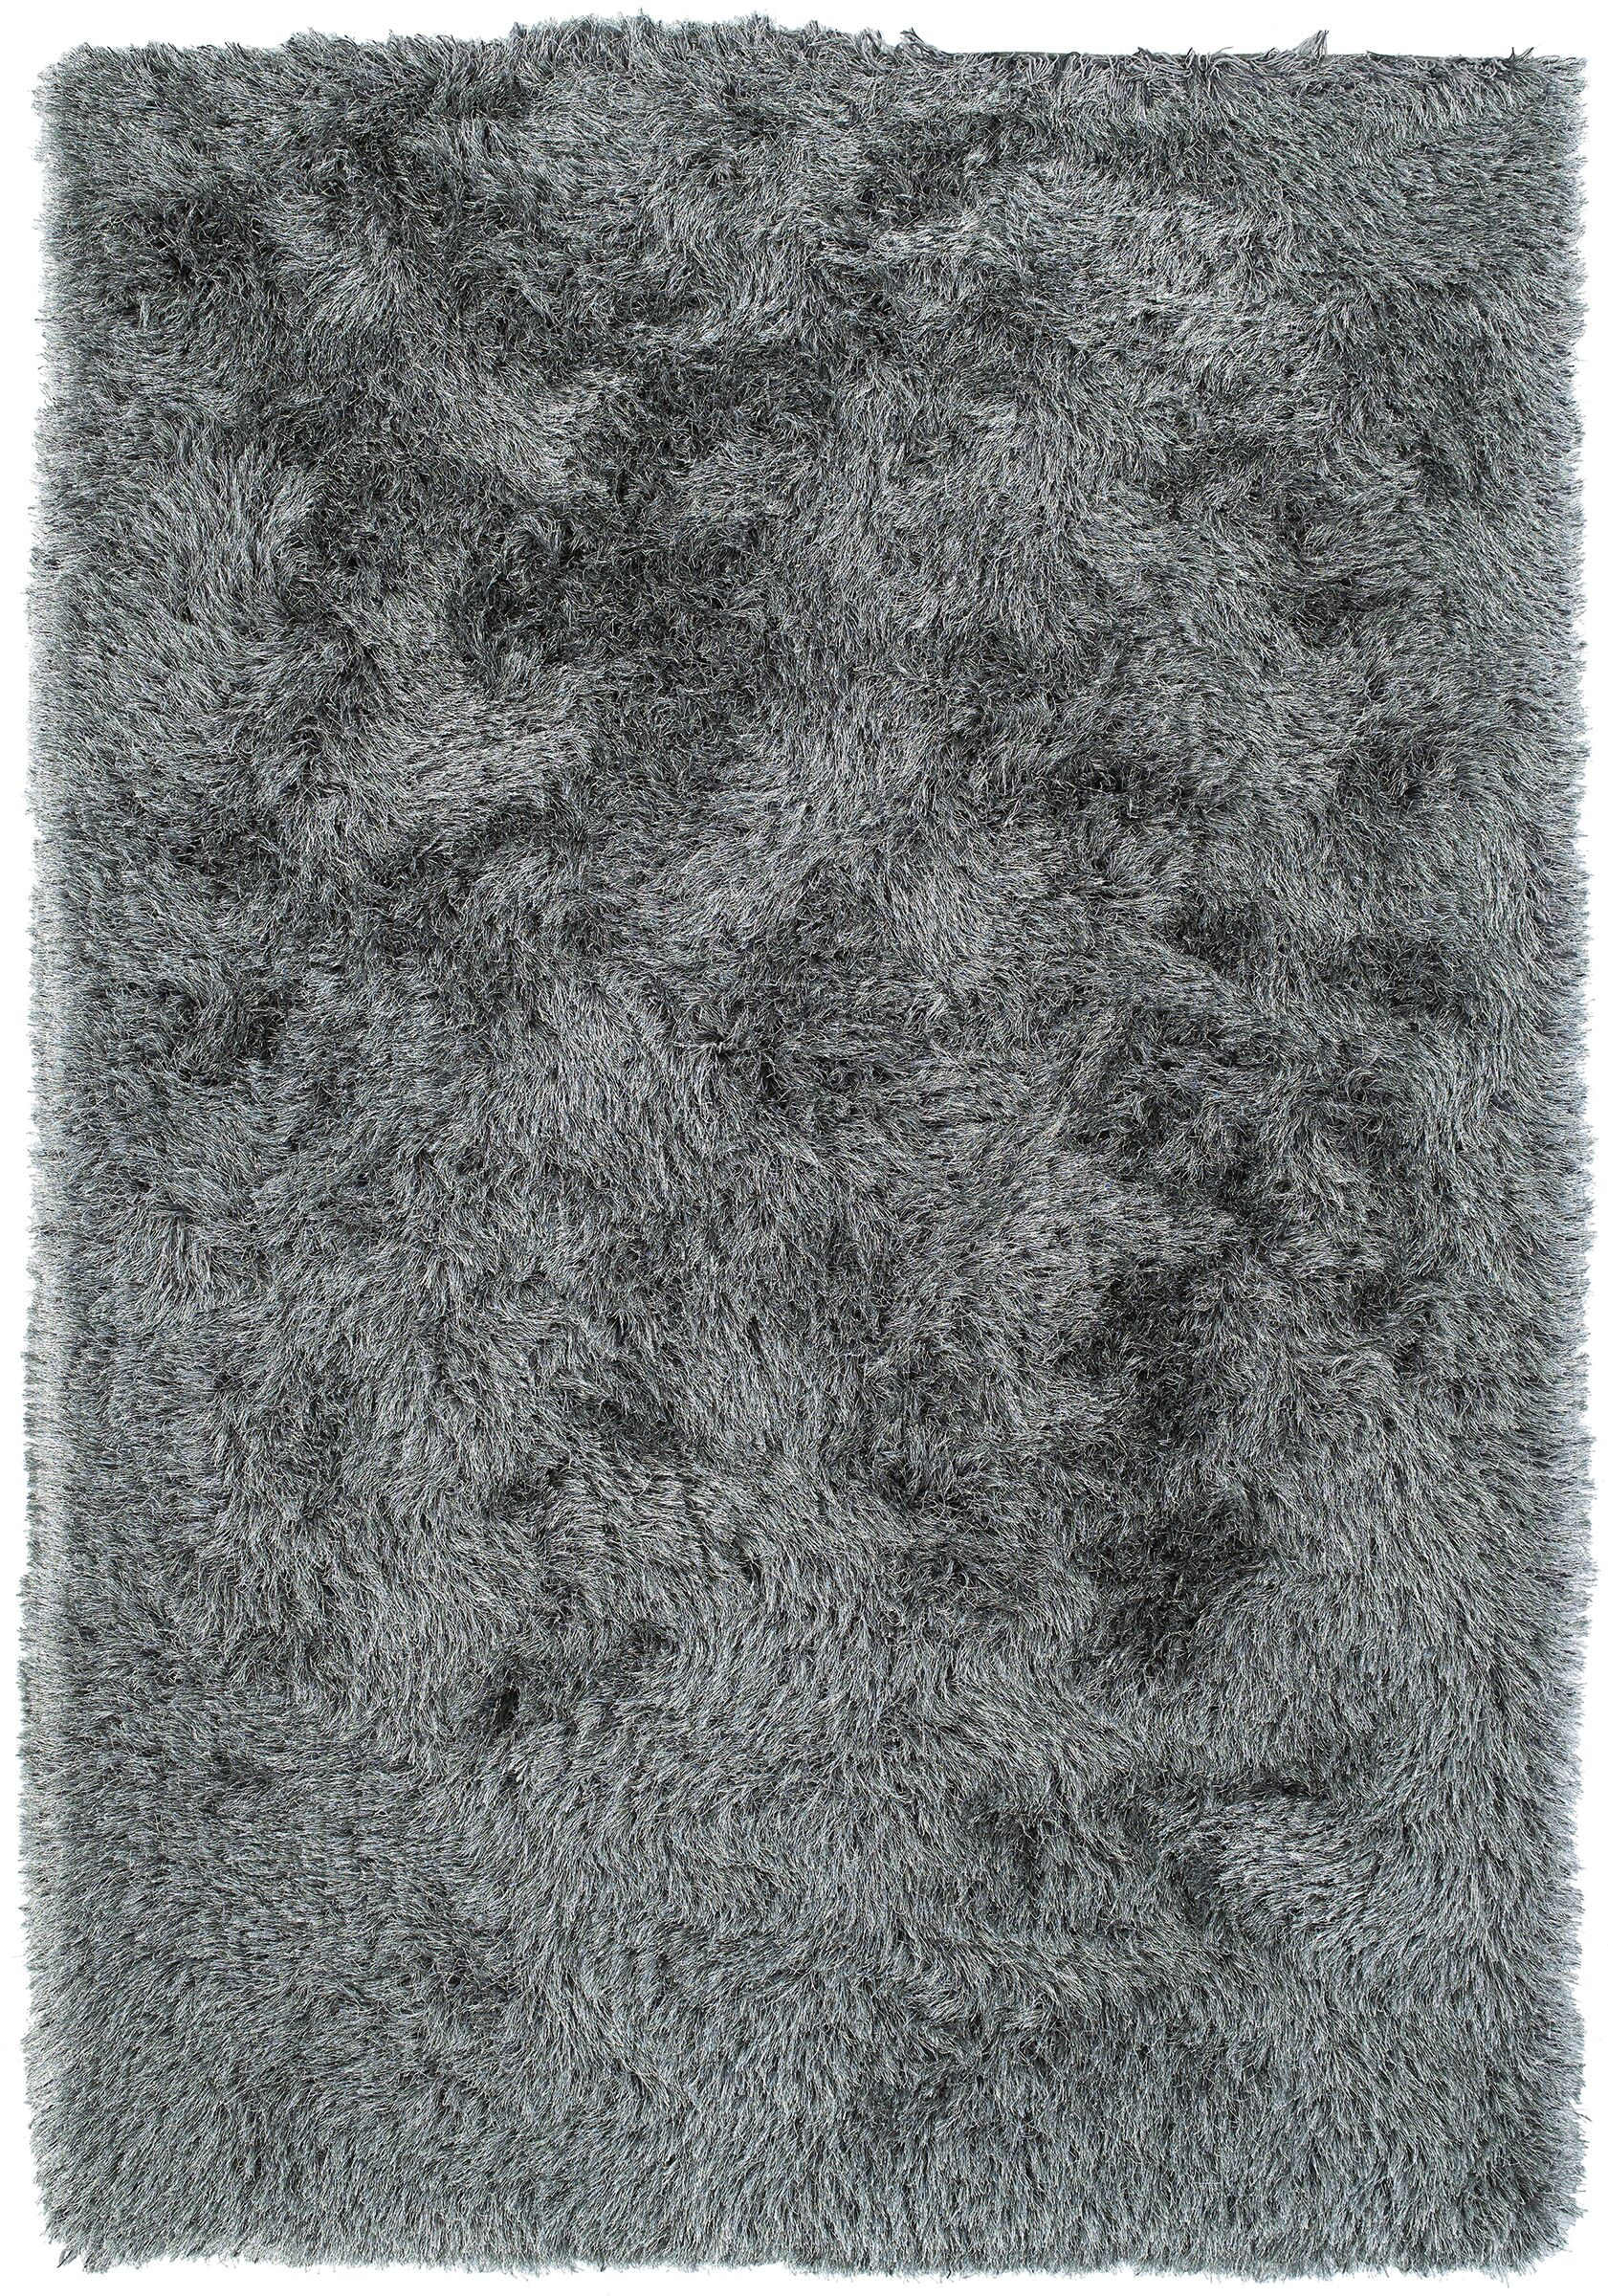 Impact Hand-Tufted Gray Area Rug Rug Size: Rectangle 5' x 7'6